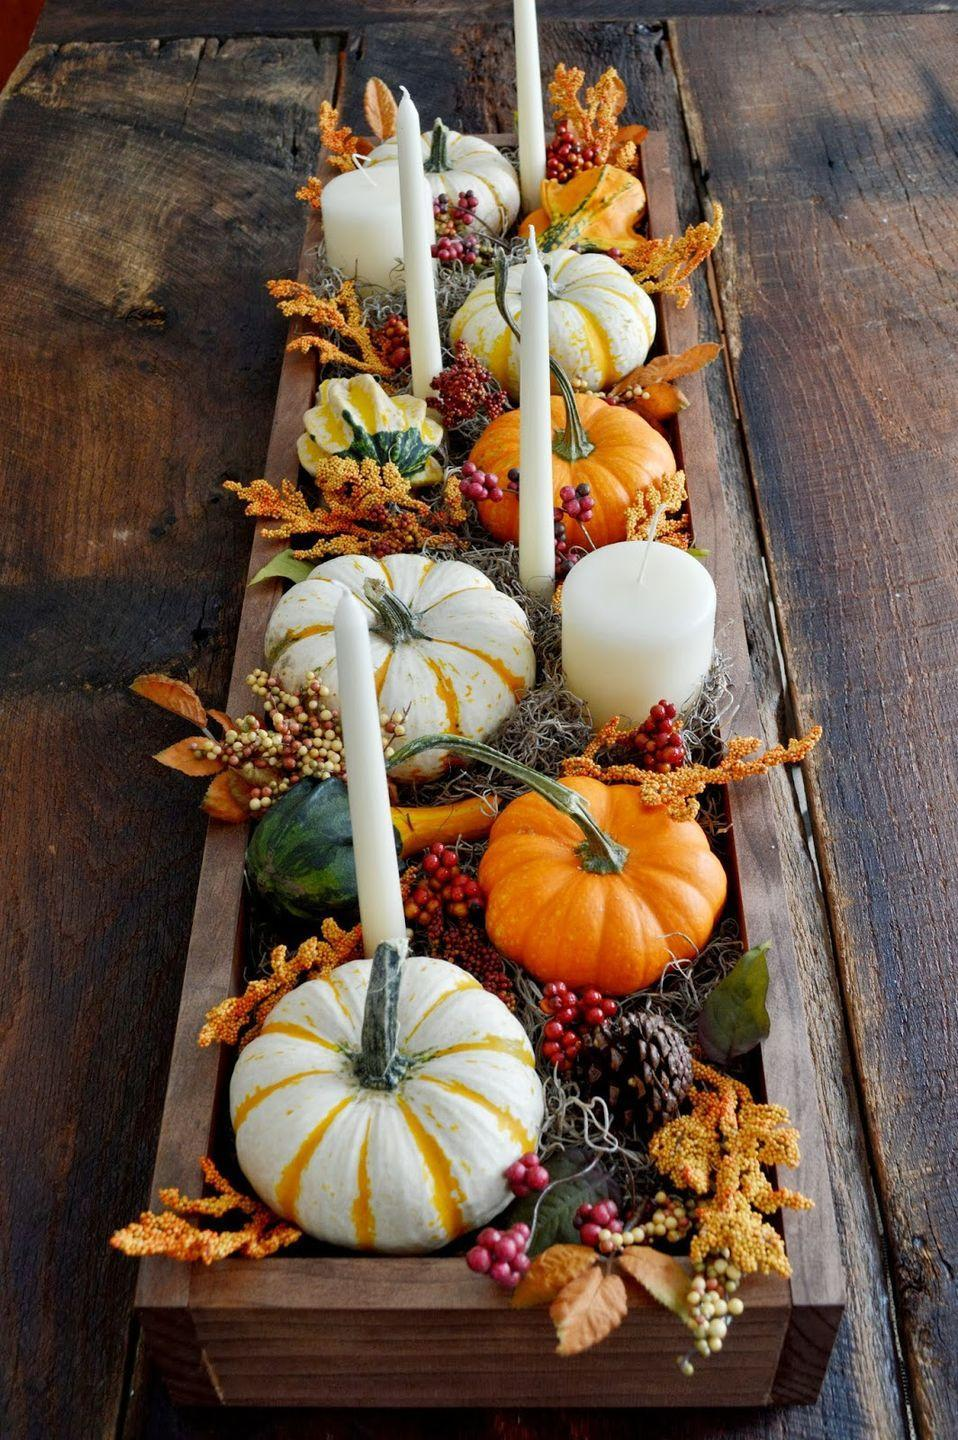 """<p>This gourd-geous piece has it all. Pumpkins, berries, leaves, and a variety of candles work together to add color and some ambience to your holiday table.</p><p><strong>Get the tutorial at <a href=""""http://724southhouse.blogspot.com/2013/09/dressing-up-your-table-for-fall.html"""" rel=""""nofollow noopener"""" target=""""_blank"""" data-ylk=""""slk:724 South House"""" class=""""link rapid-noclick-resp"""">724 South House</a>.</strong></p><p><strong><a class=""""link rapid-noclick-resp"""" href=""""https://www.amazon.com/MyGift-Country-Succulent-Planters-Windowsill/dp/B0722HXHKS/?tag=syn-yahoo-20&ascsubtag=%5Bartid%7C10050.g.2130%5Bsrc%7Cyahoo-us"""" rel=""""nofollow noopener"""" target=""""_blank"""" data-ylk=""""slk:SHOP RUSTIC PLANTERS"""">SHOP RUSTIC PLANTERS</a><br></strong></p>"""